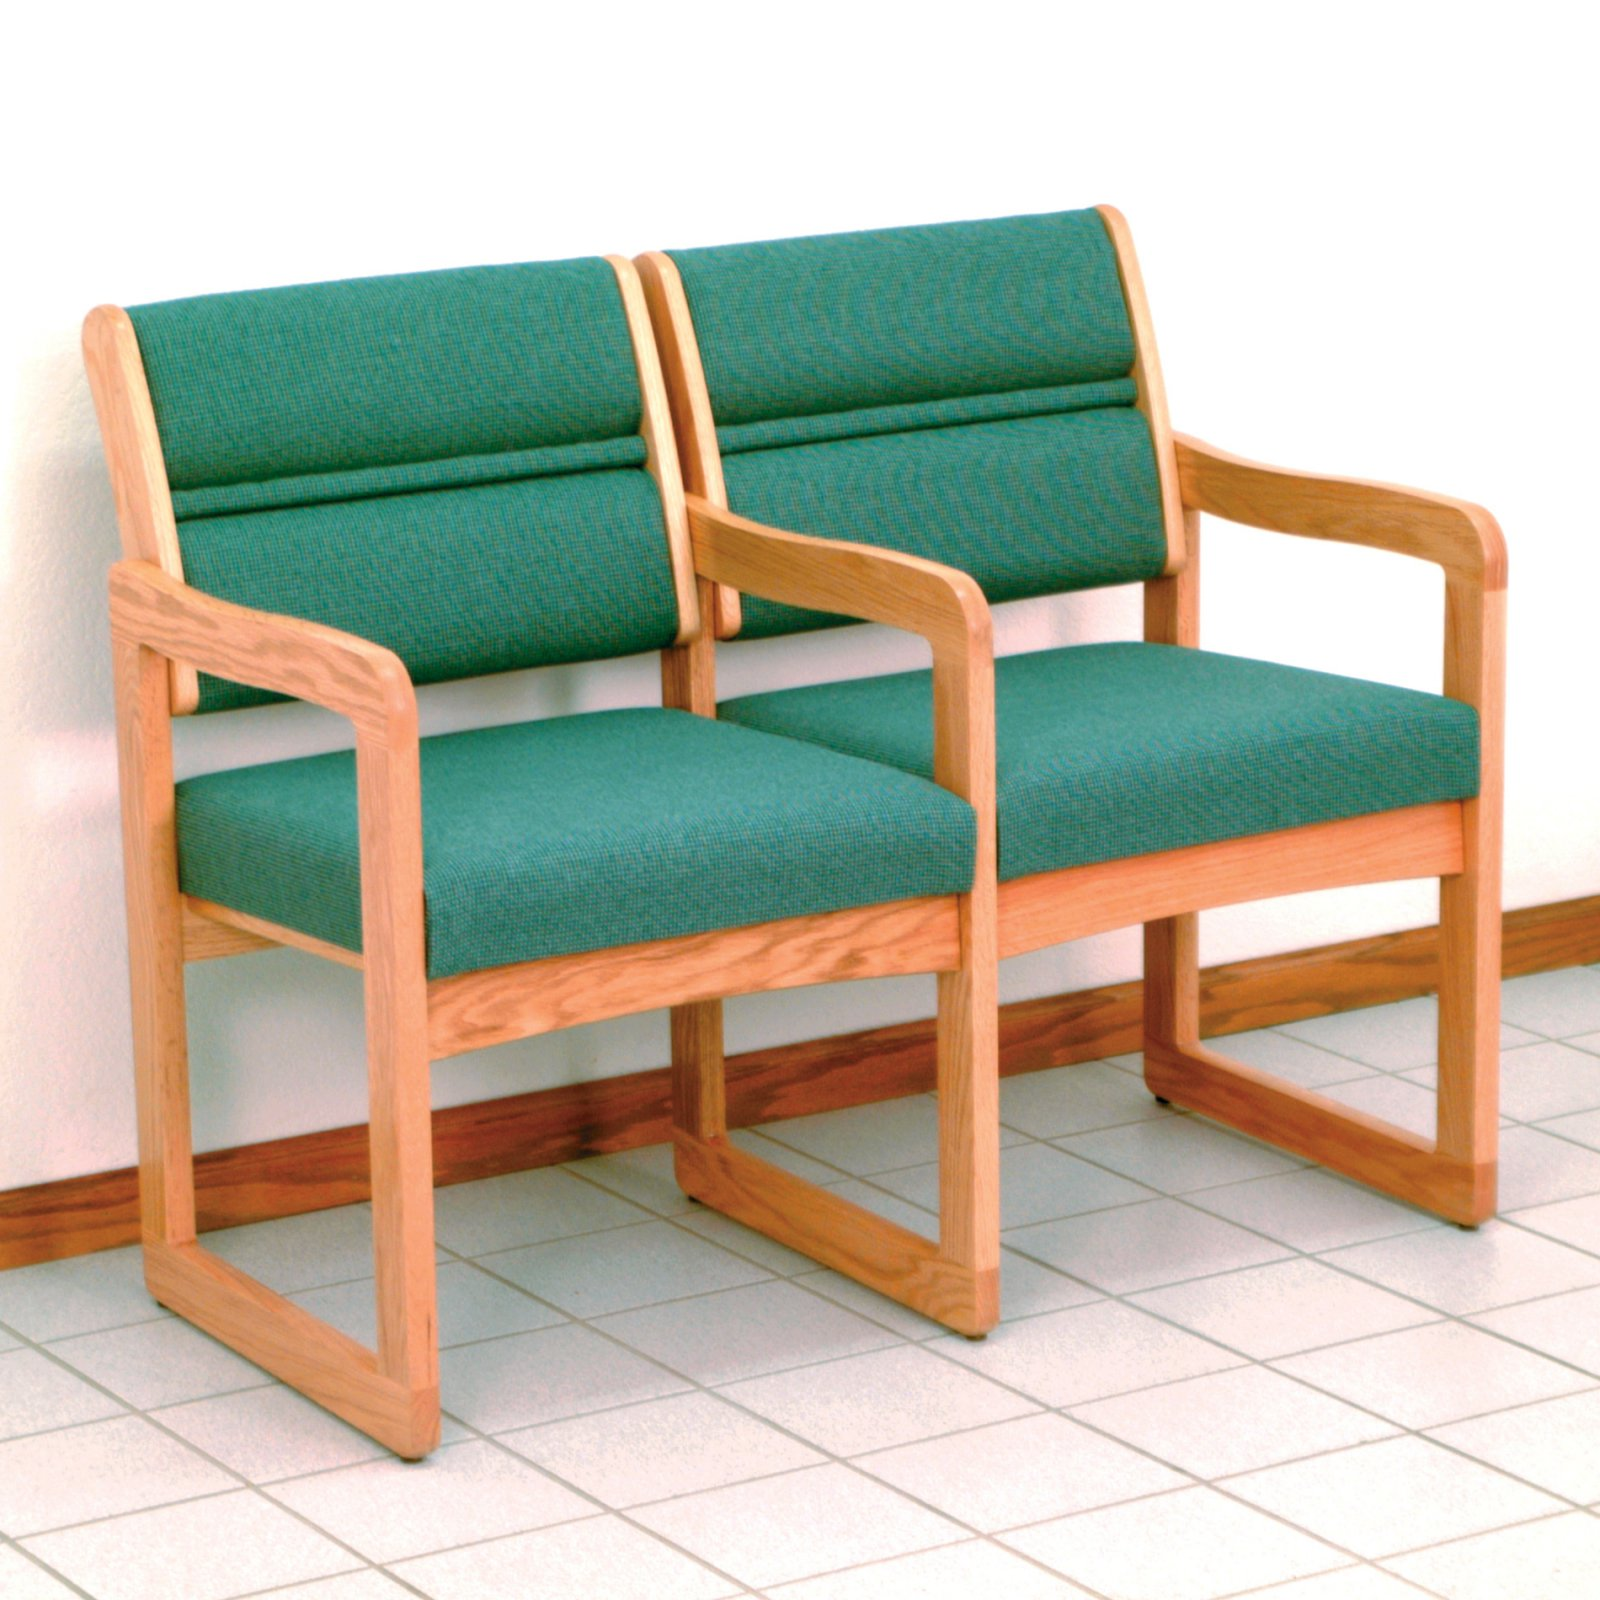 Wooden Mallet DW1-2 Solid Oak 2-Seat Chair with Center Arms